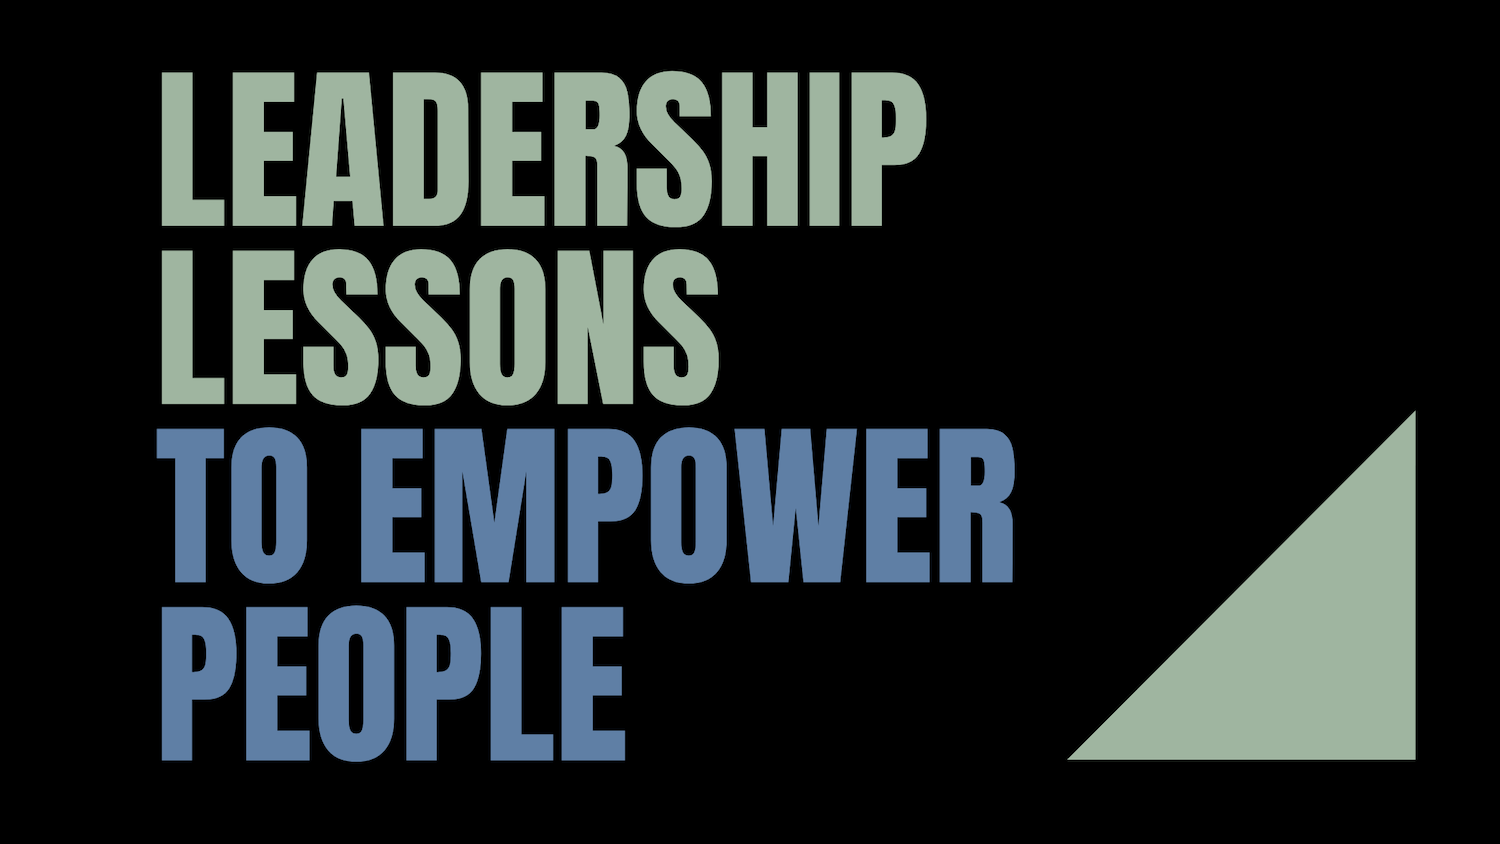 Proven leadership lessons